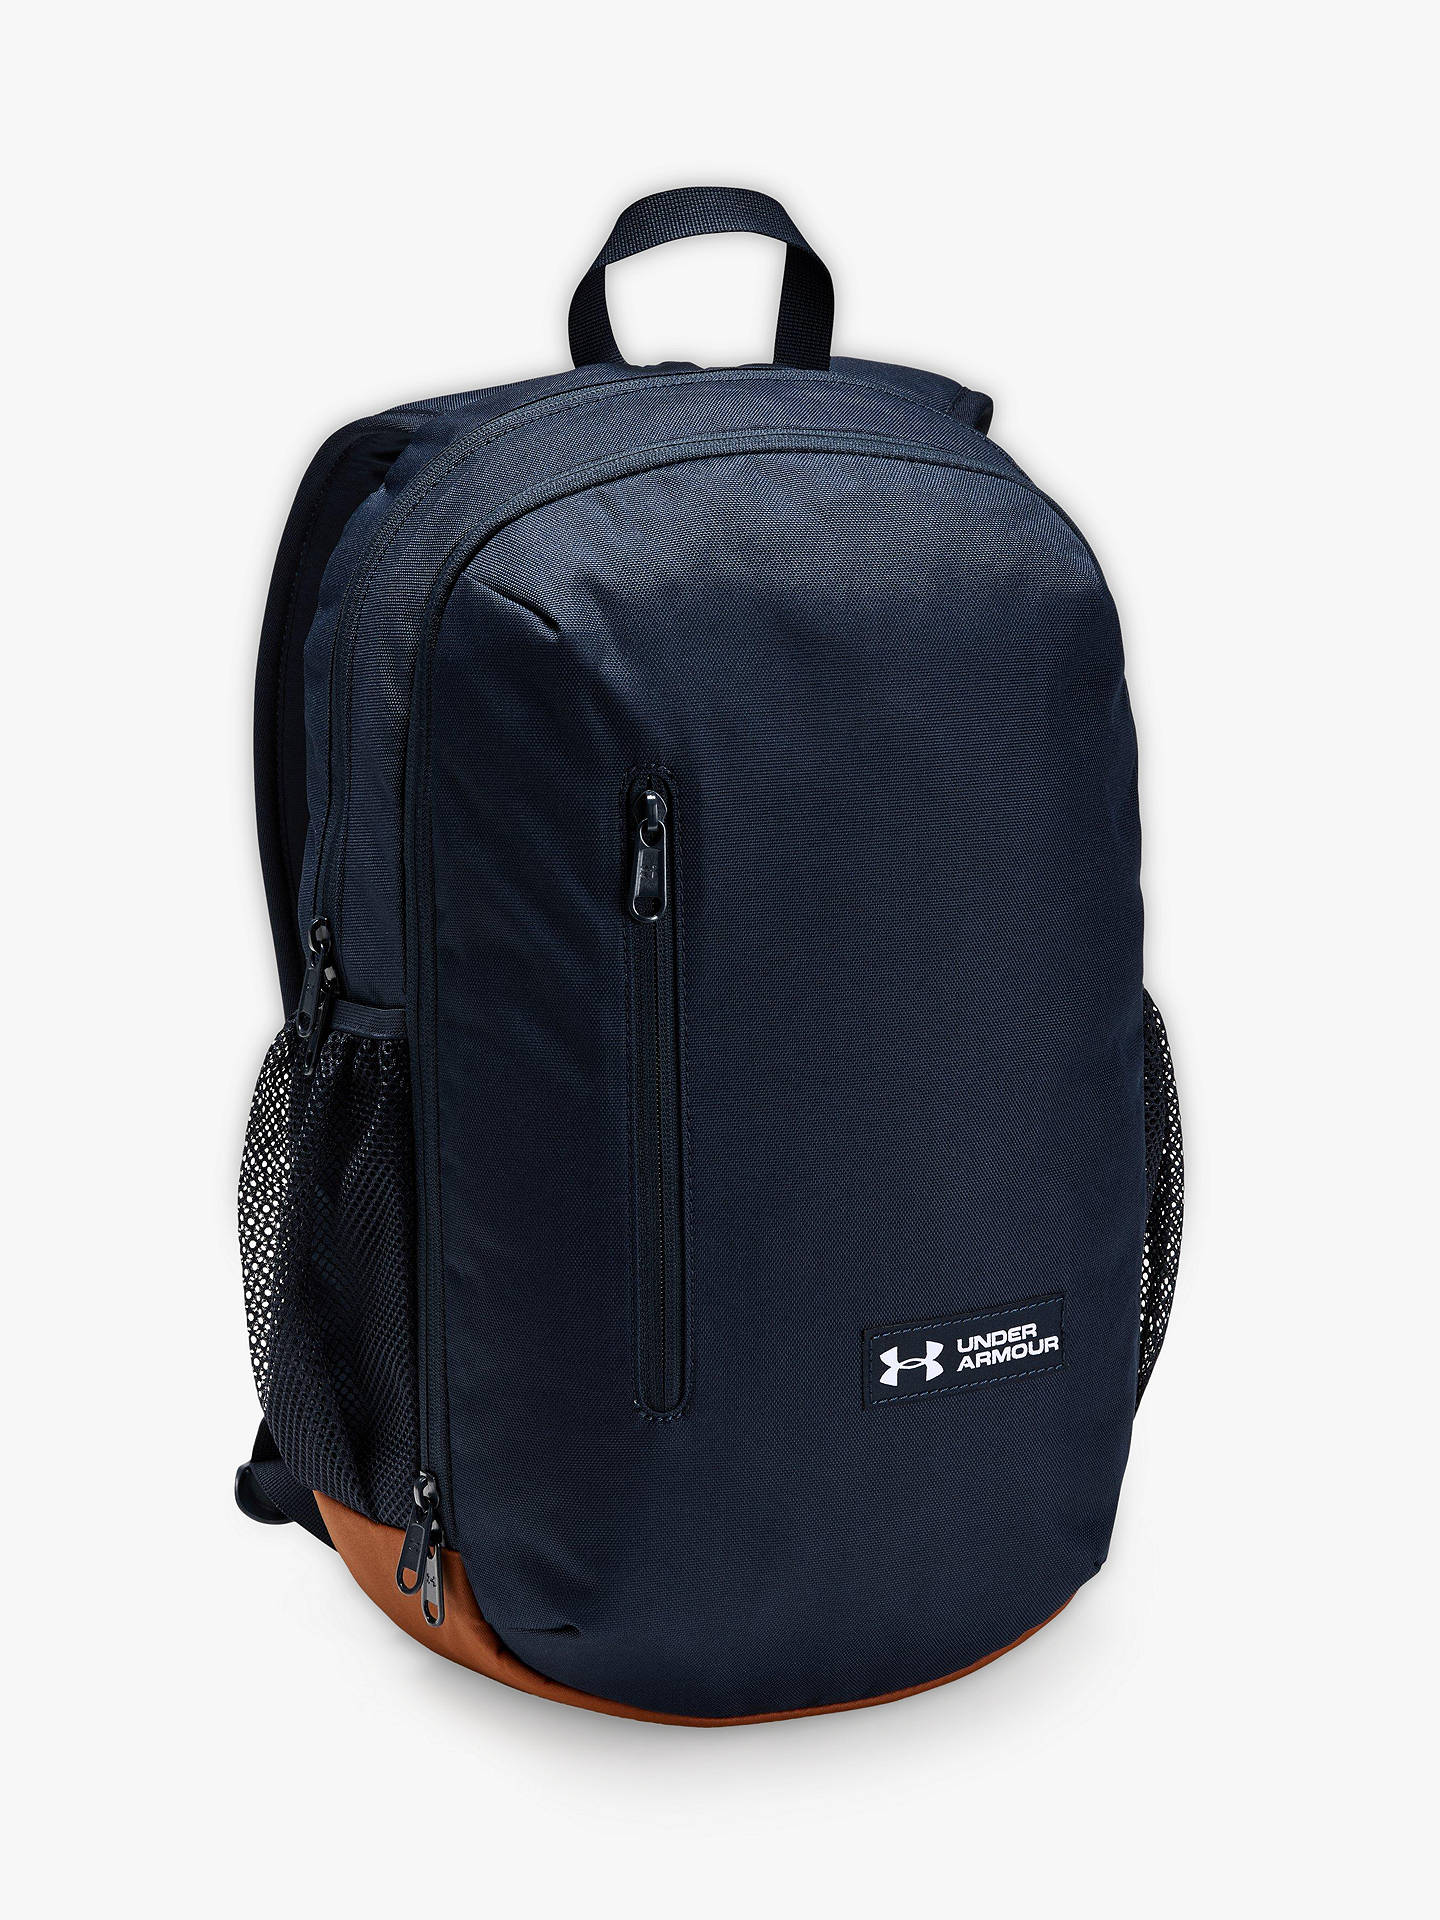 469e748f5847 Under Armour Roland Backpack at John Lewis   Partners